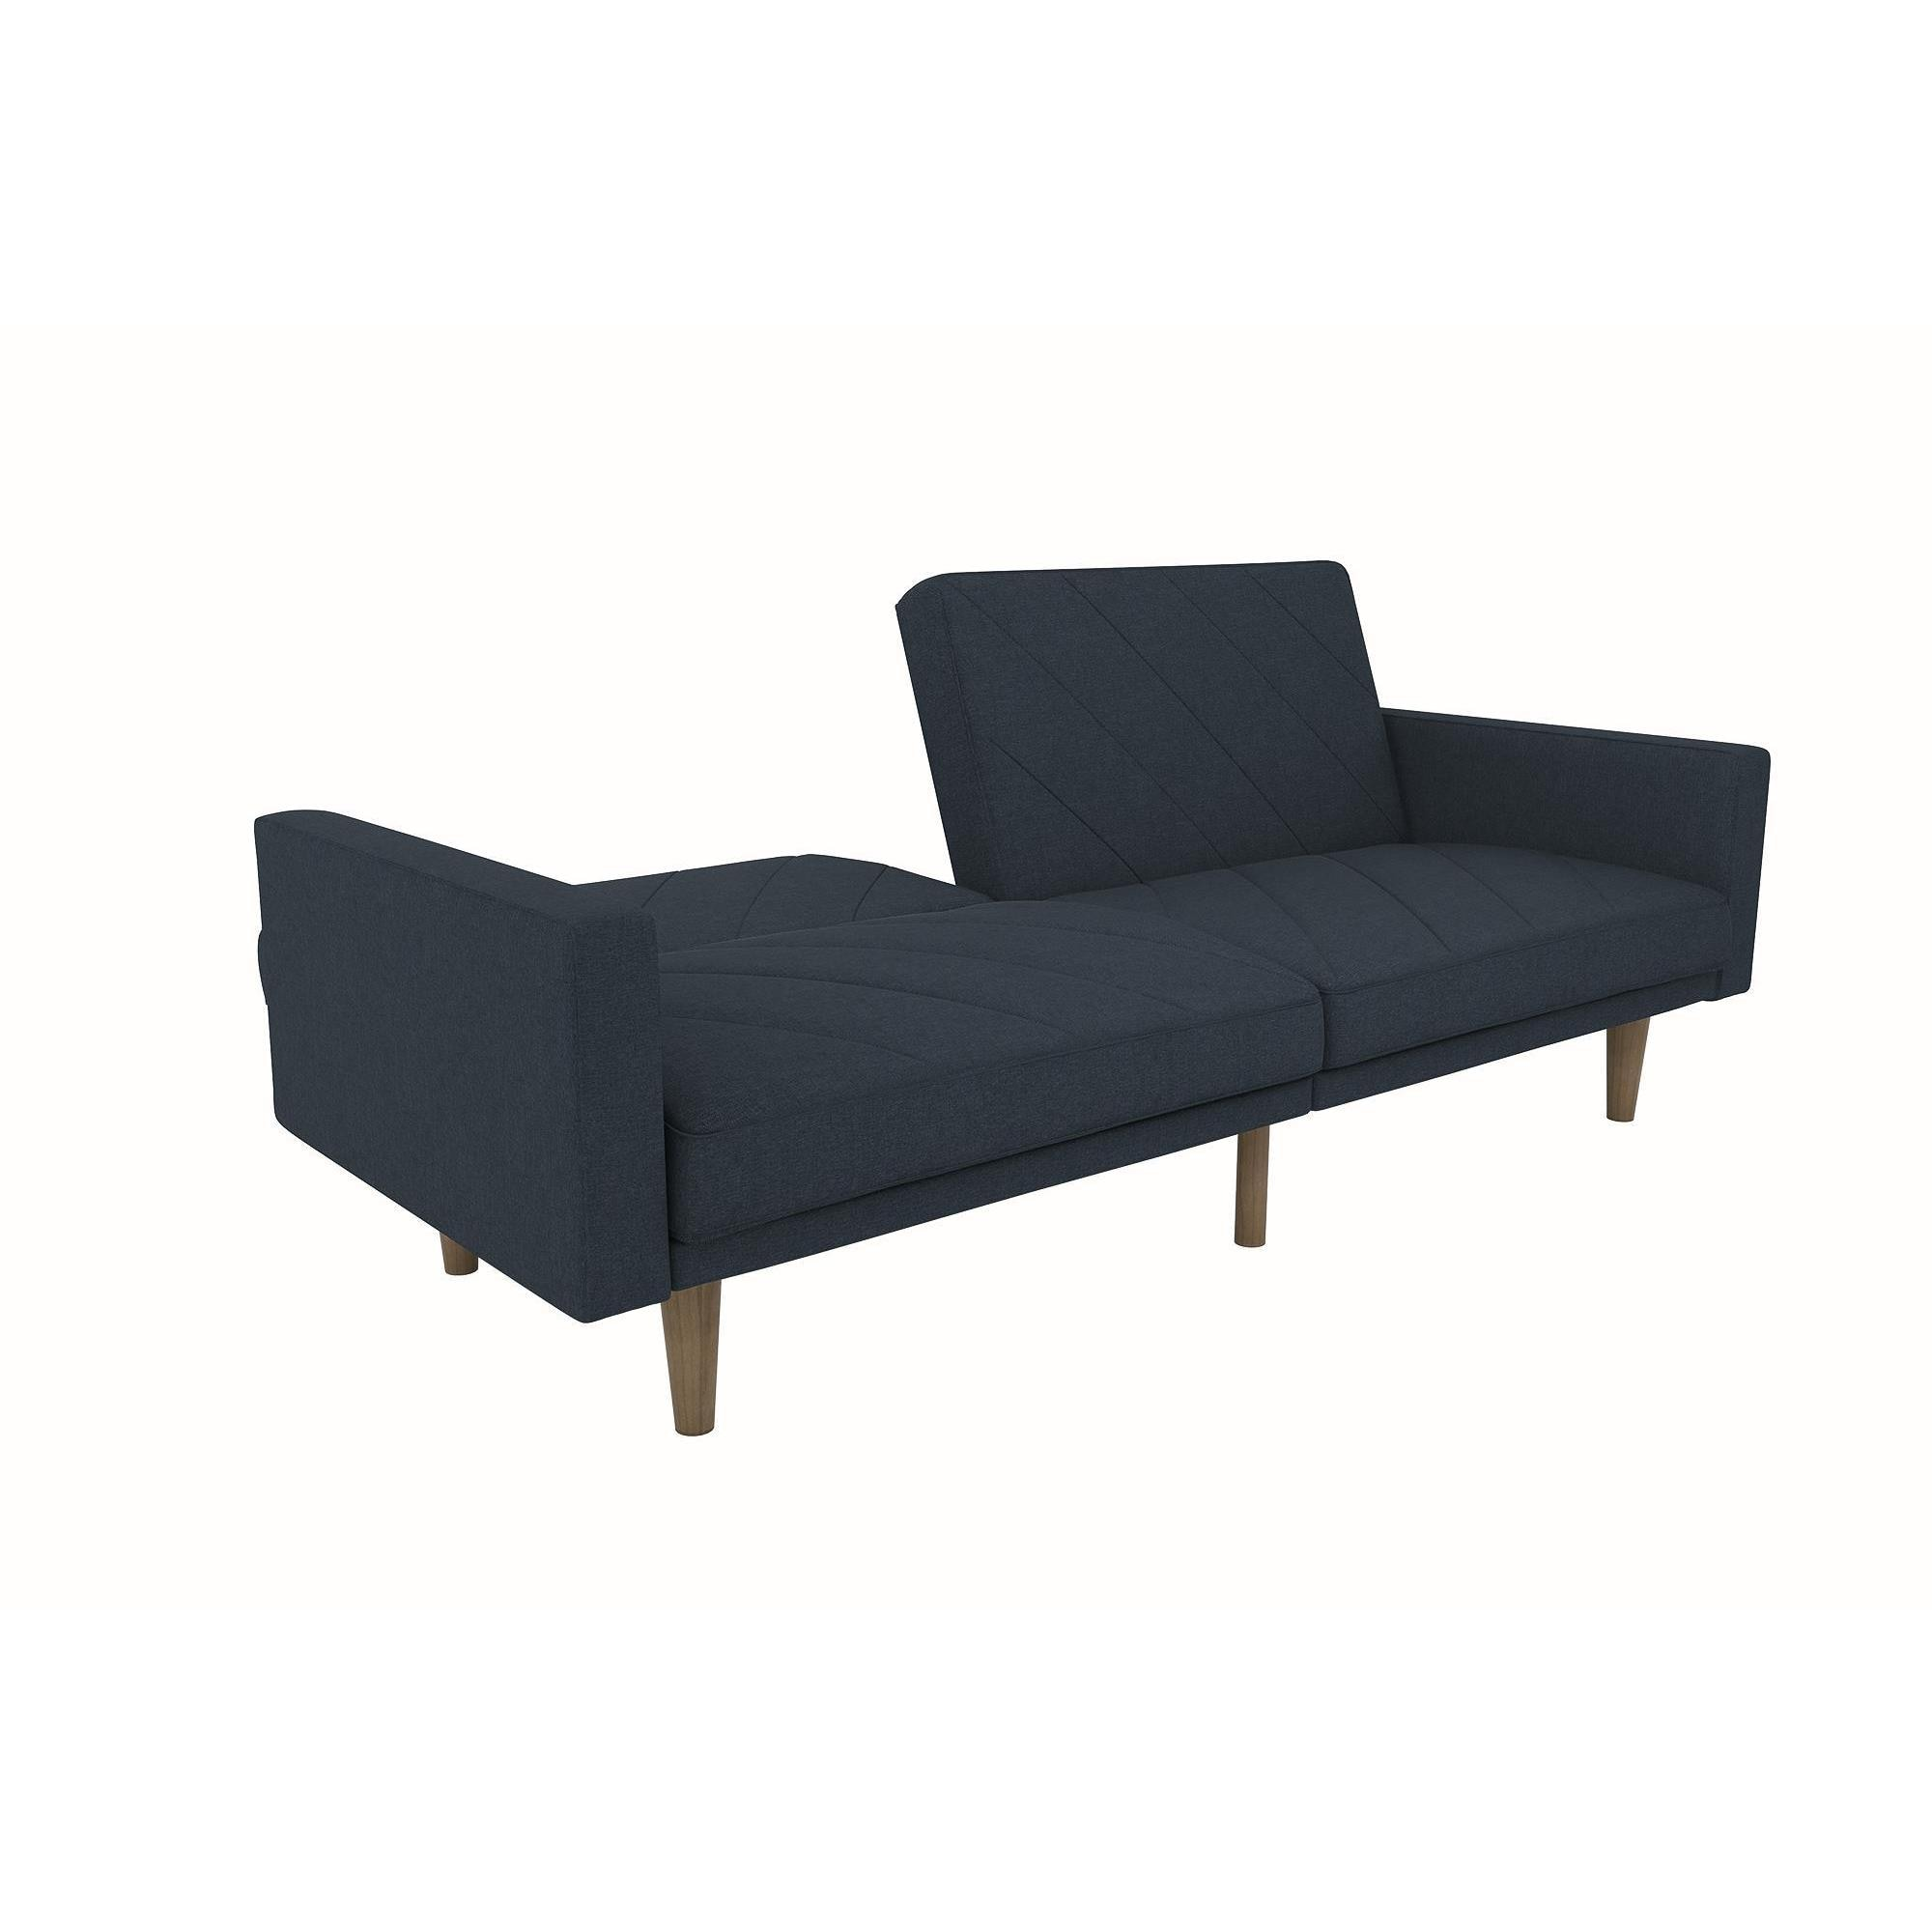 Medium image of dhp paxson contemporary navy blue linen futon   free shipping today   overstock     21114741